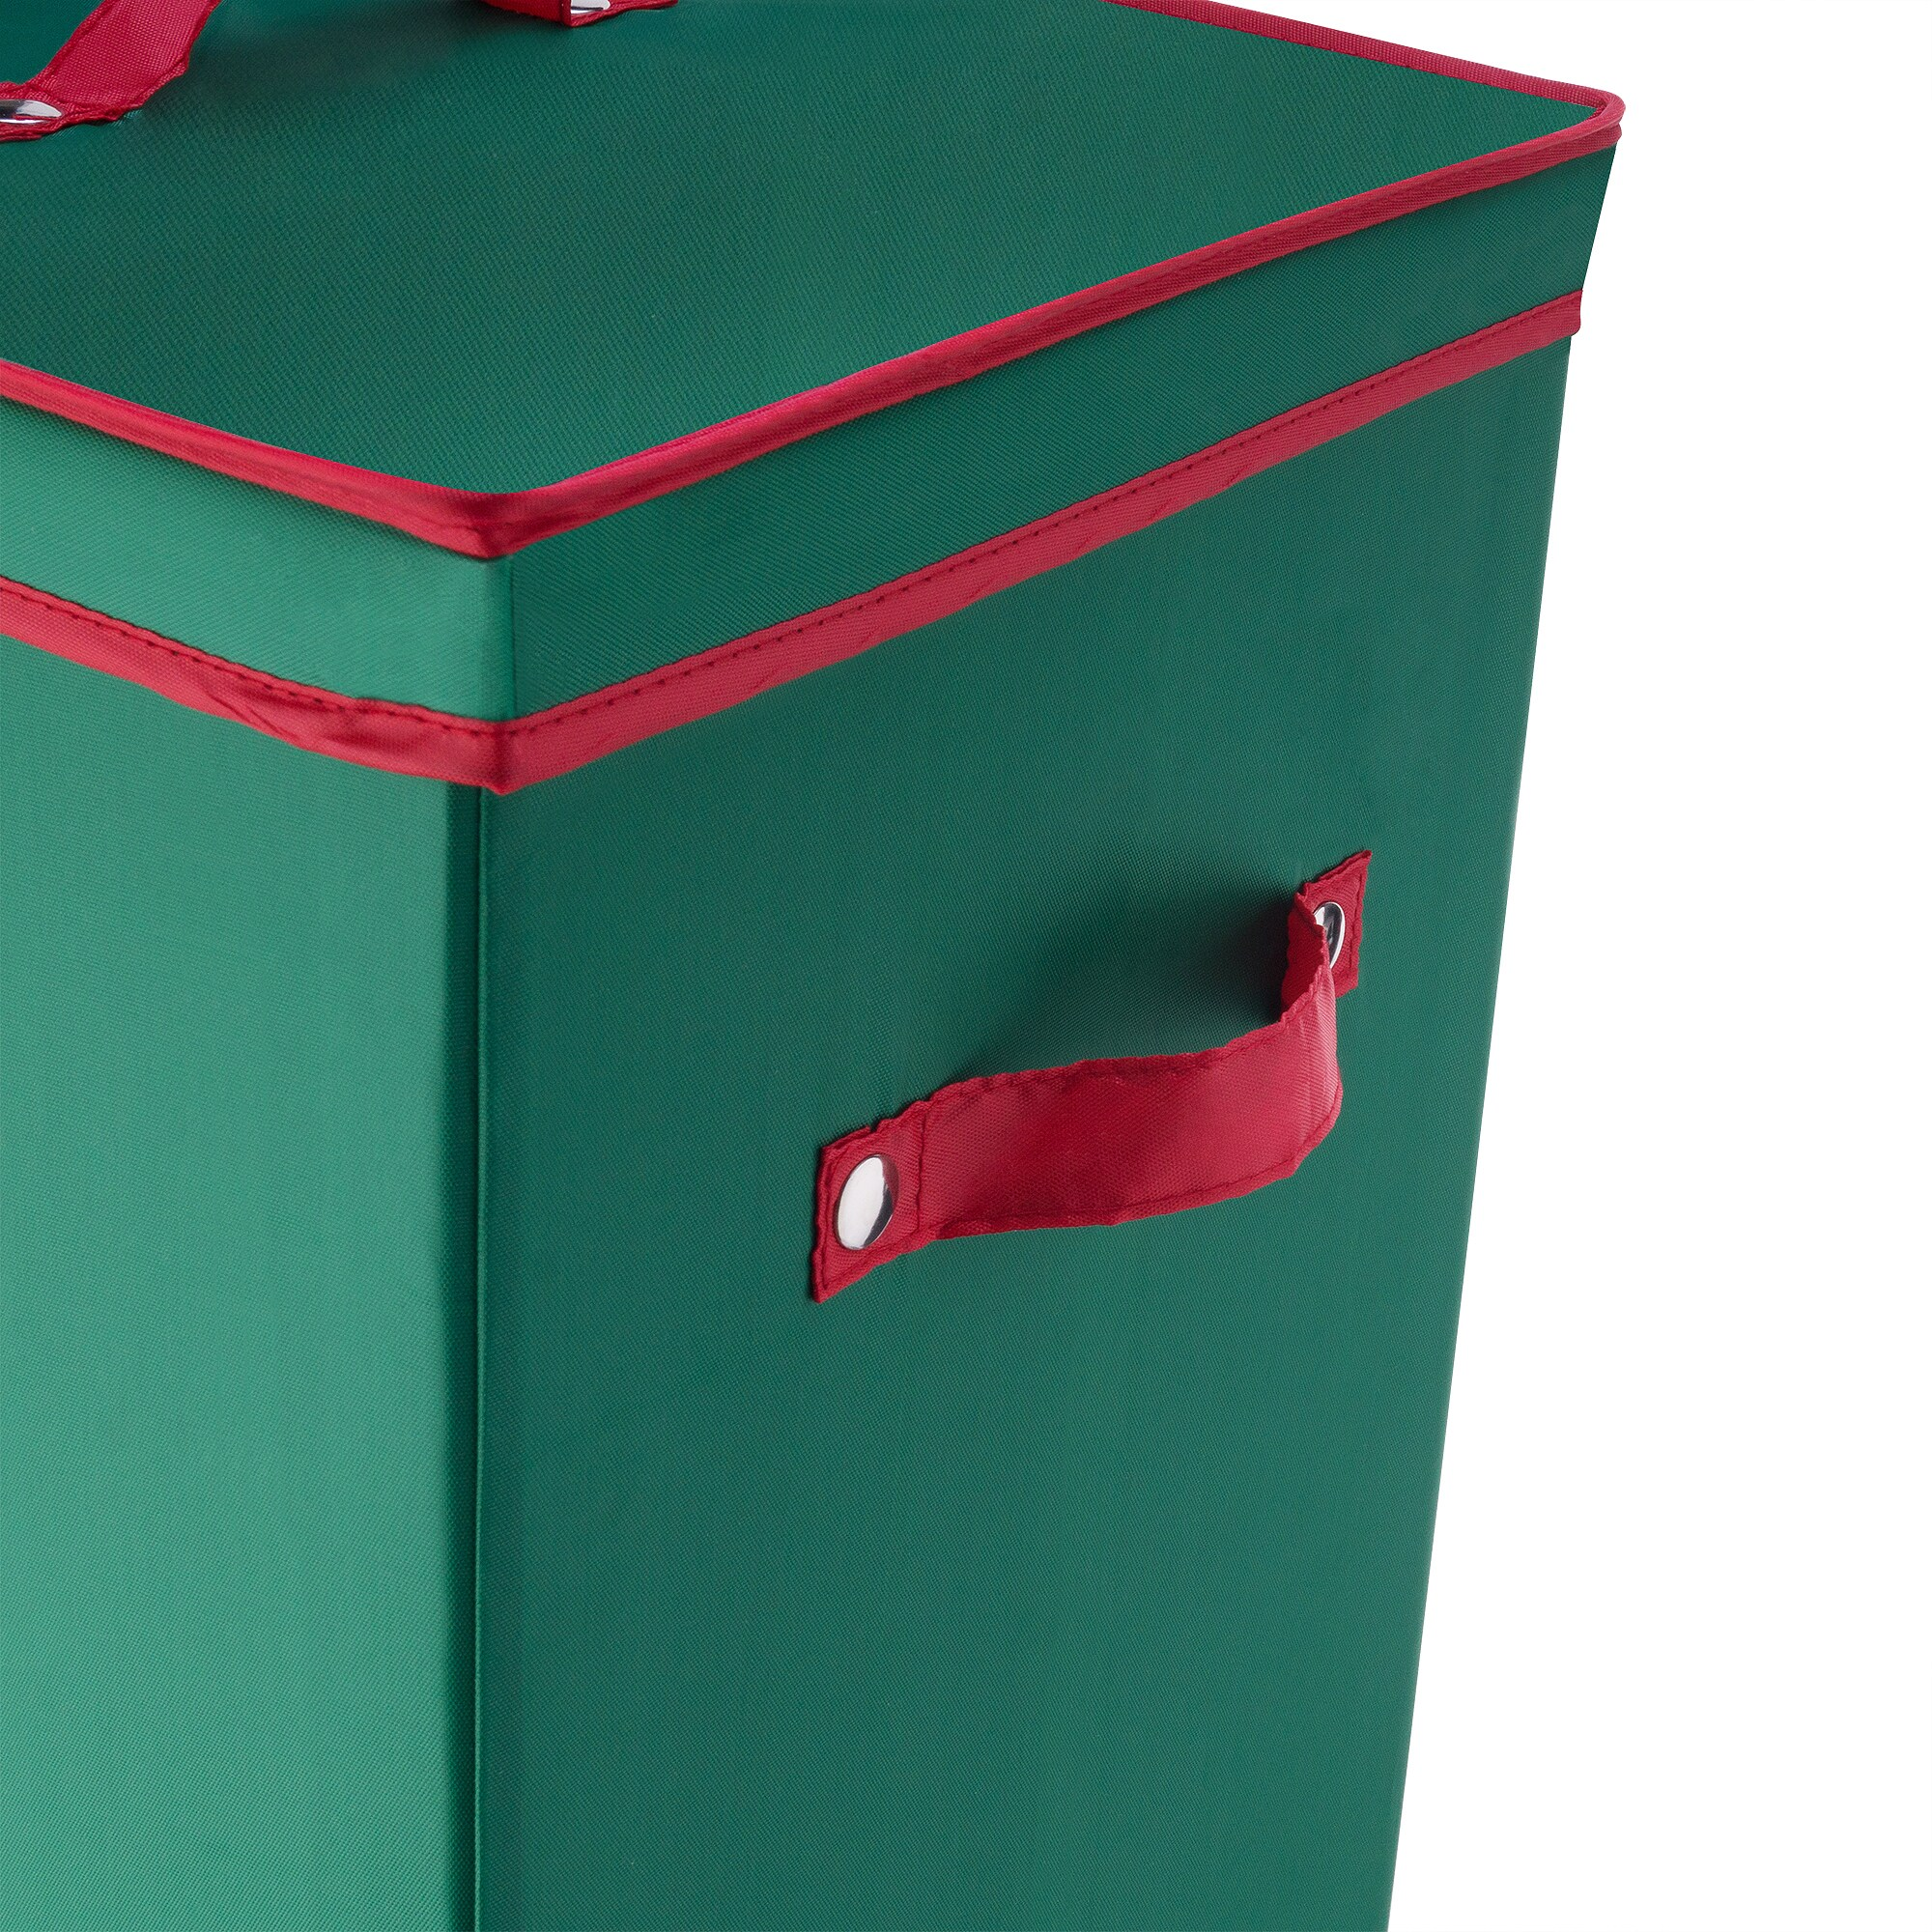 Shop Elf Stor Green Fabric 40 Inch Wrapping Paper Storage Box With Lid    Free Shipping On Orders Over $45   Overstock.com   13435216